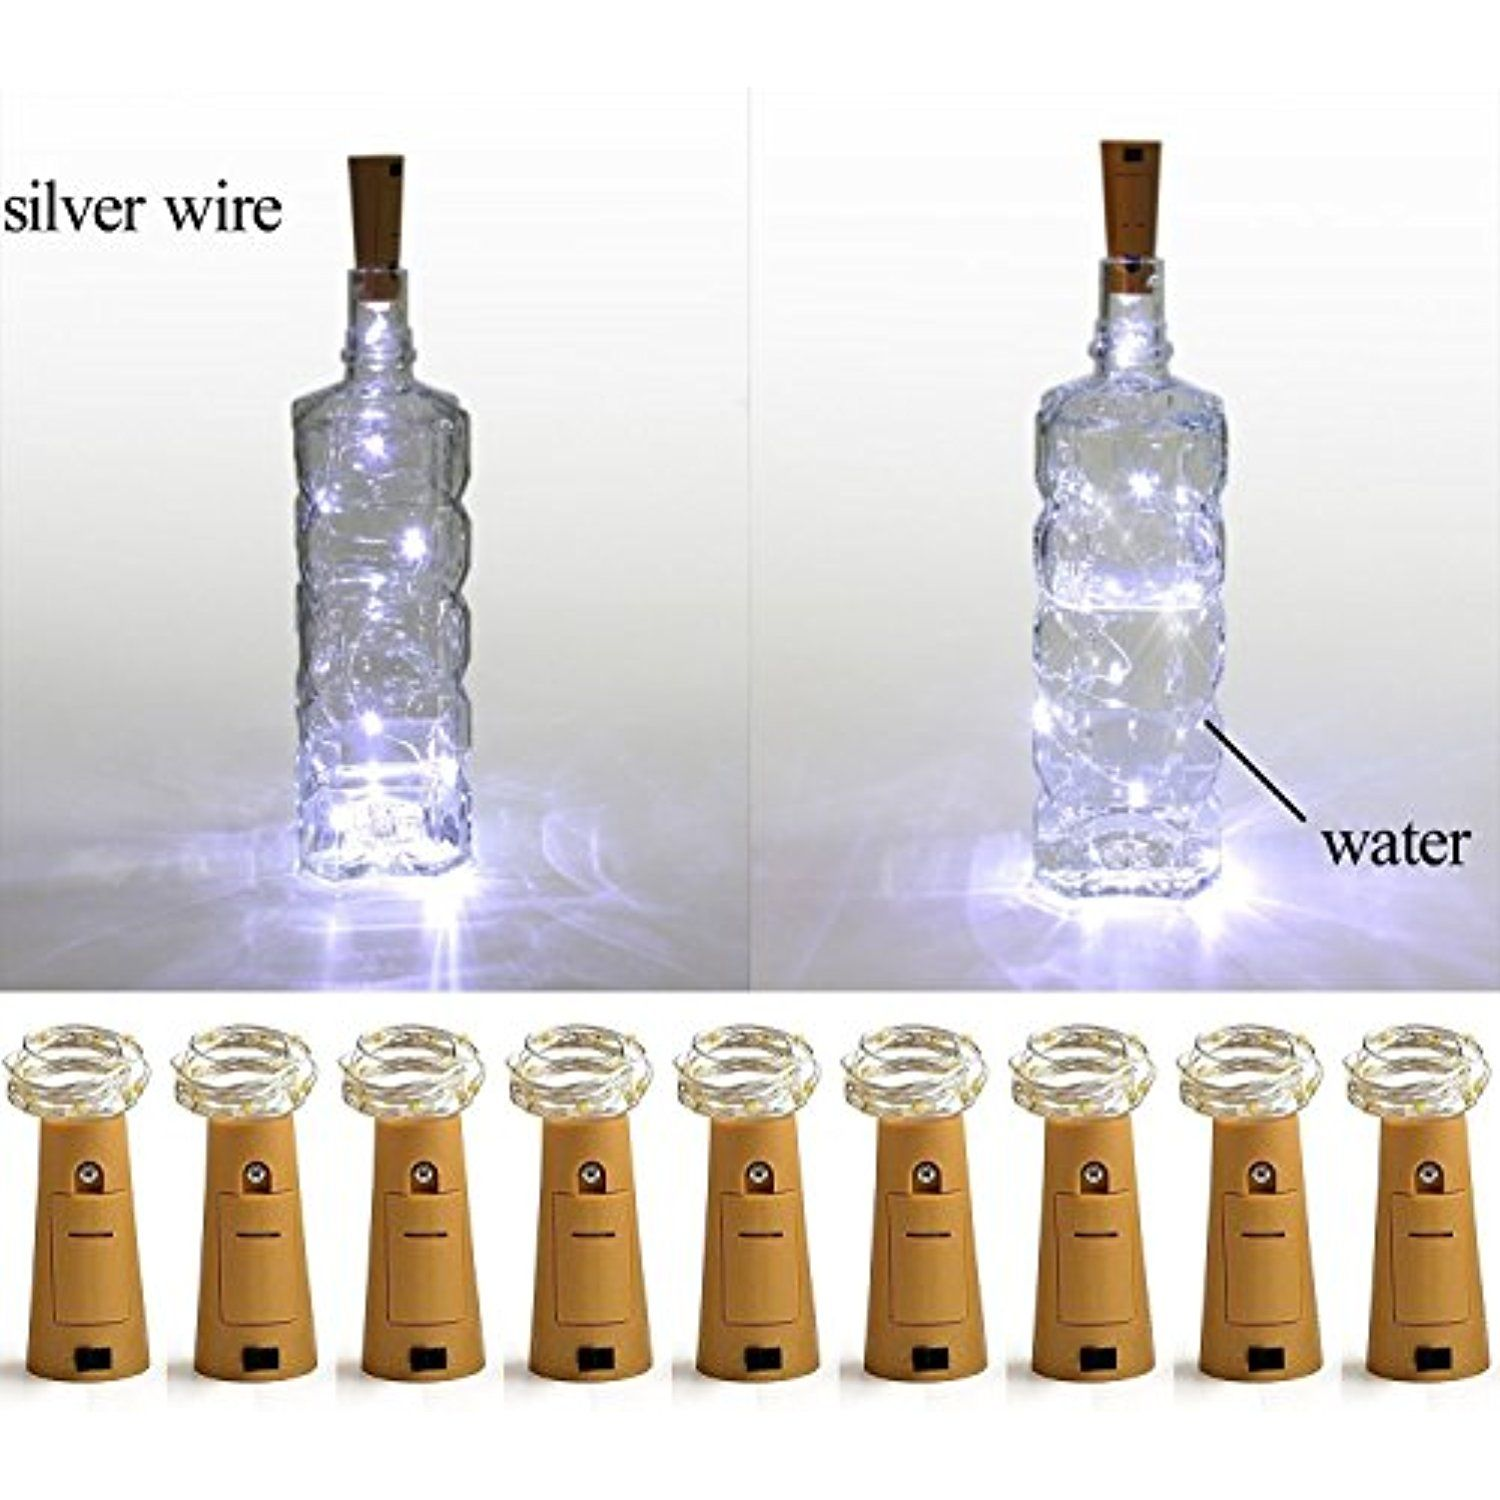 LXS Pack of 9 Cork Shape Wine Bottle Lights, Silver Wire Battery - Diy Indoor Halloween Decorations